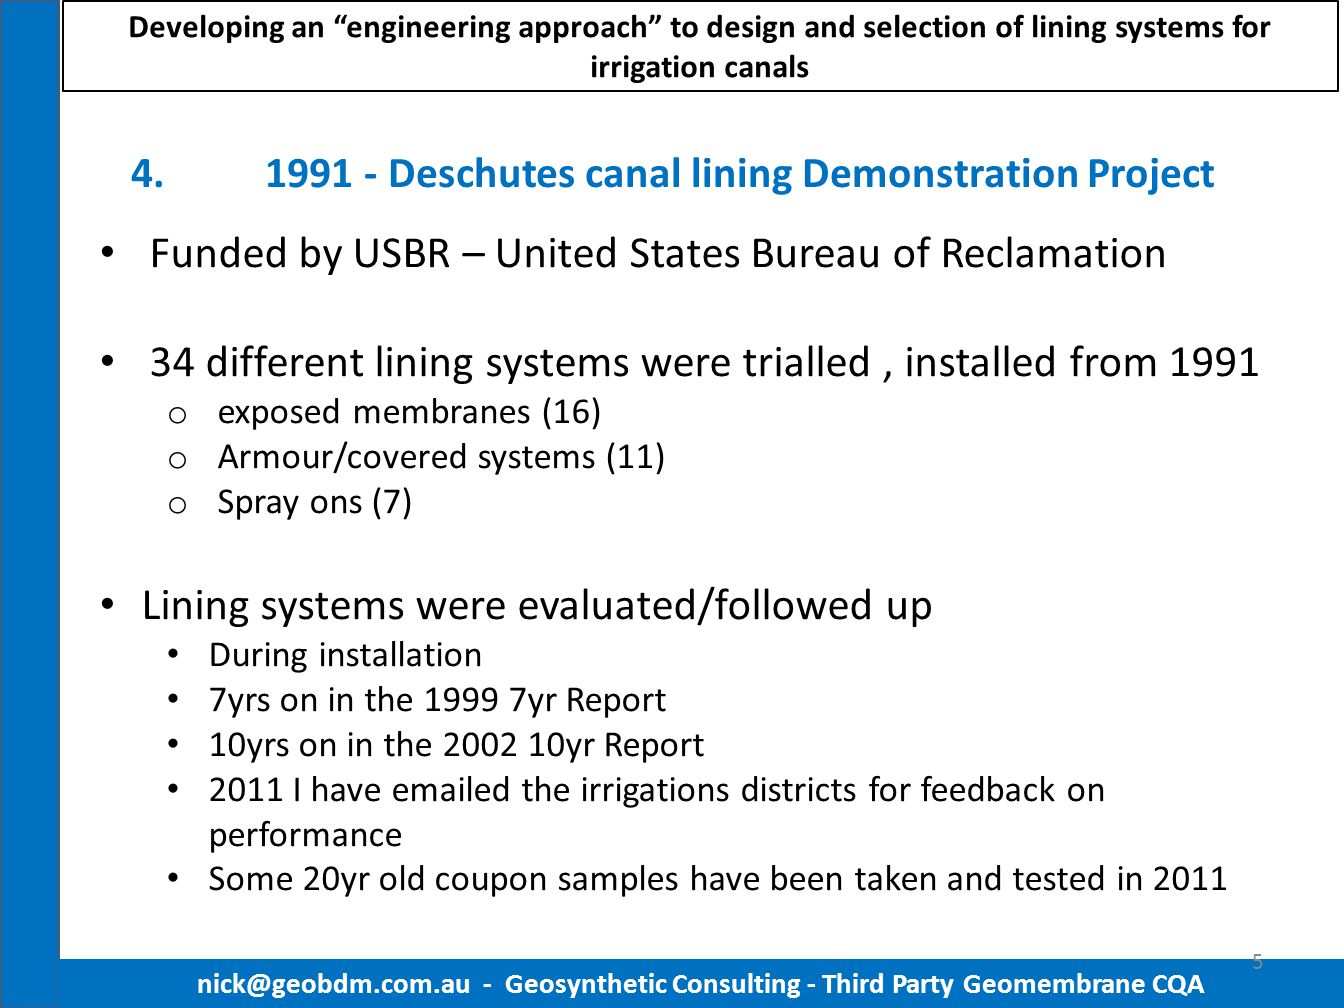 1991 - Deschutes canal lining Demonstration Project nick@geobdm.com.au - Geosynthetic Consulting - Third Party Geomembrane CQA 6 Developing an engineering approach to design and selection of lining systems for irrigation canals